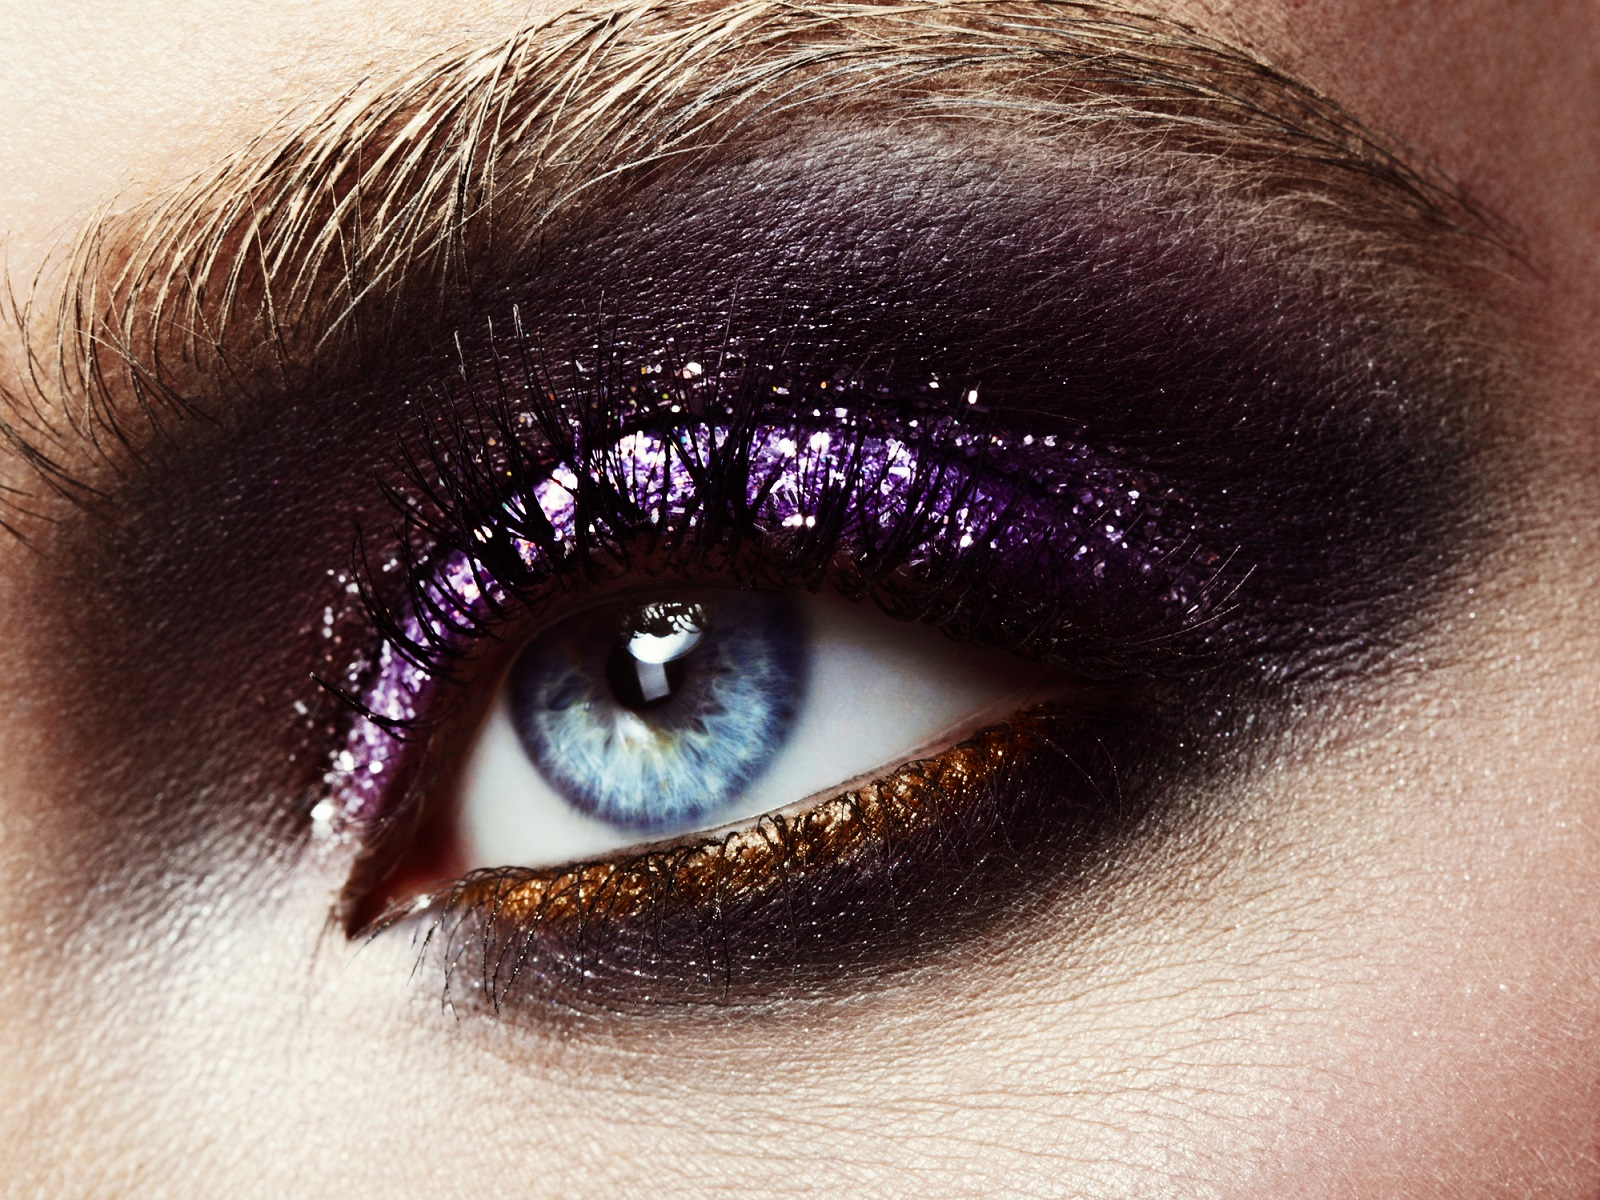 Female eye with professional bright shiny make-up.